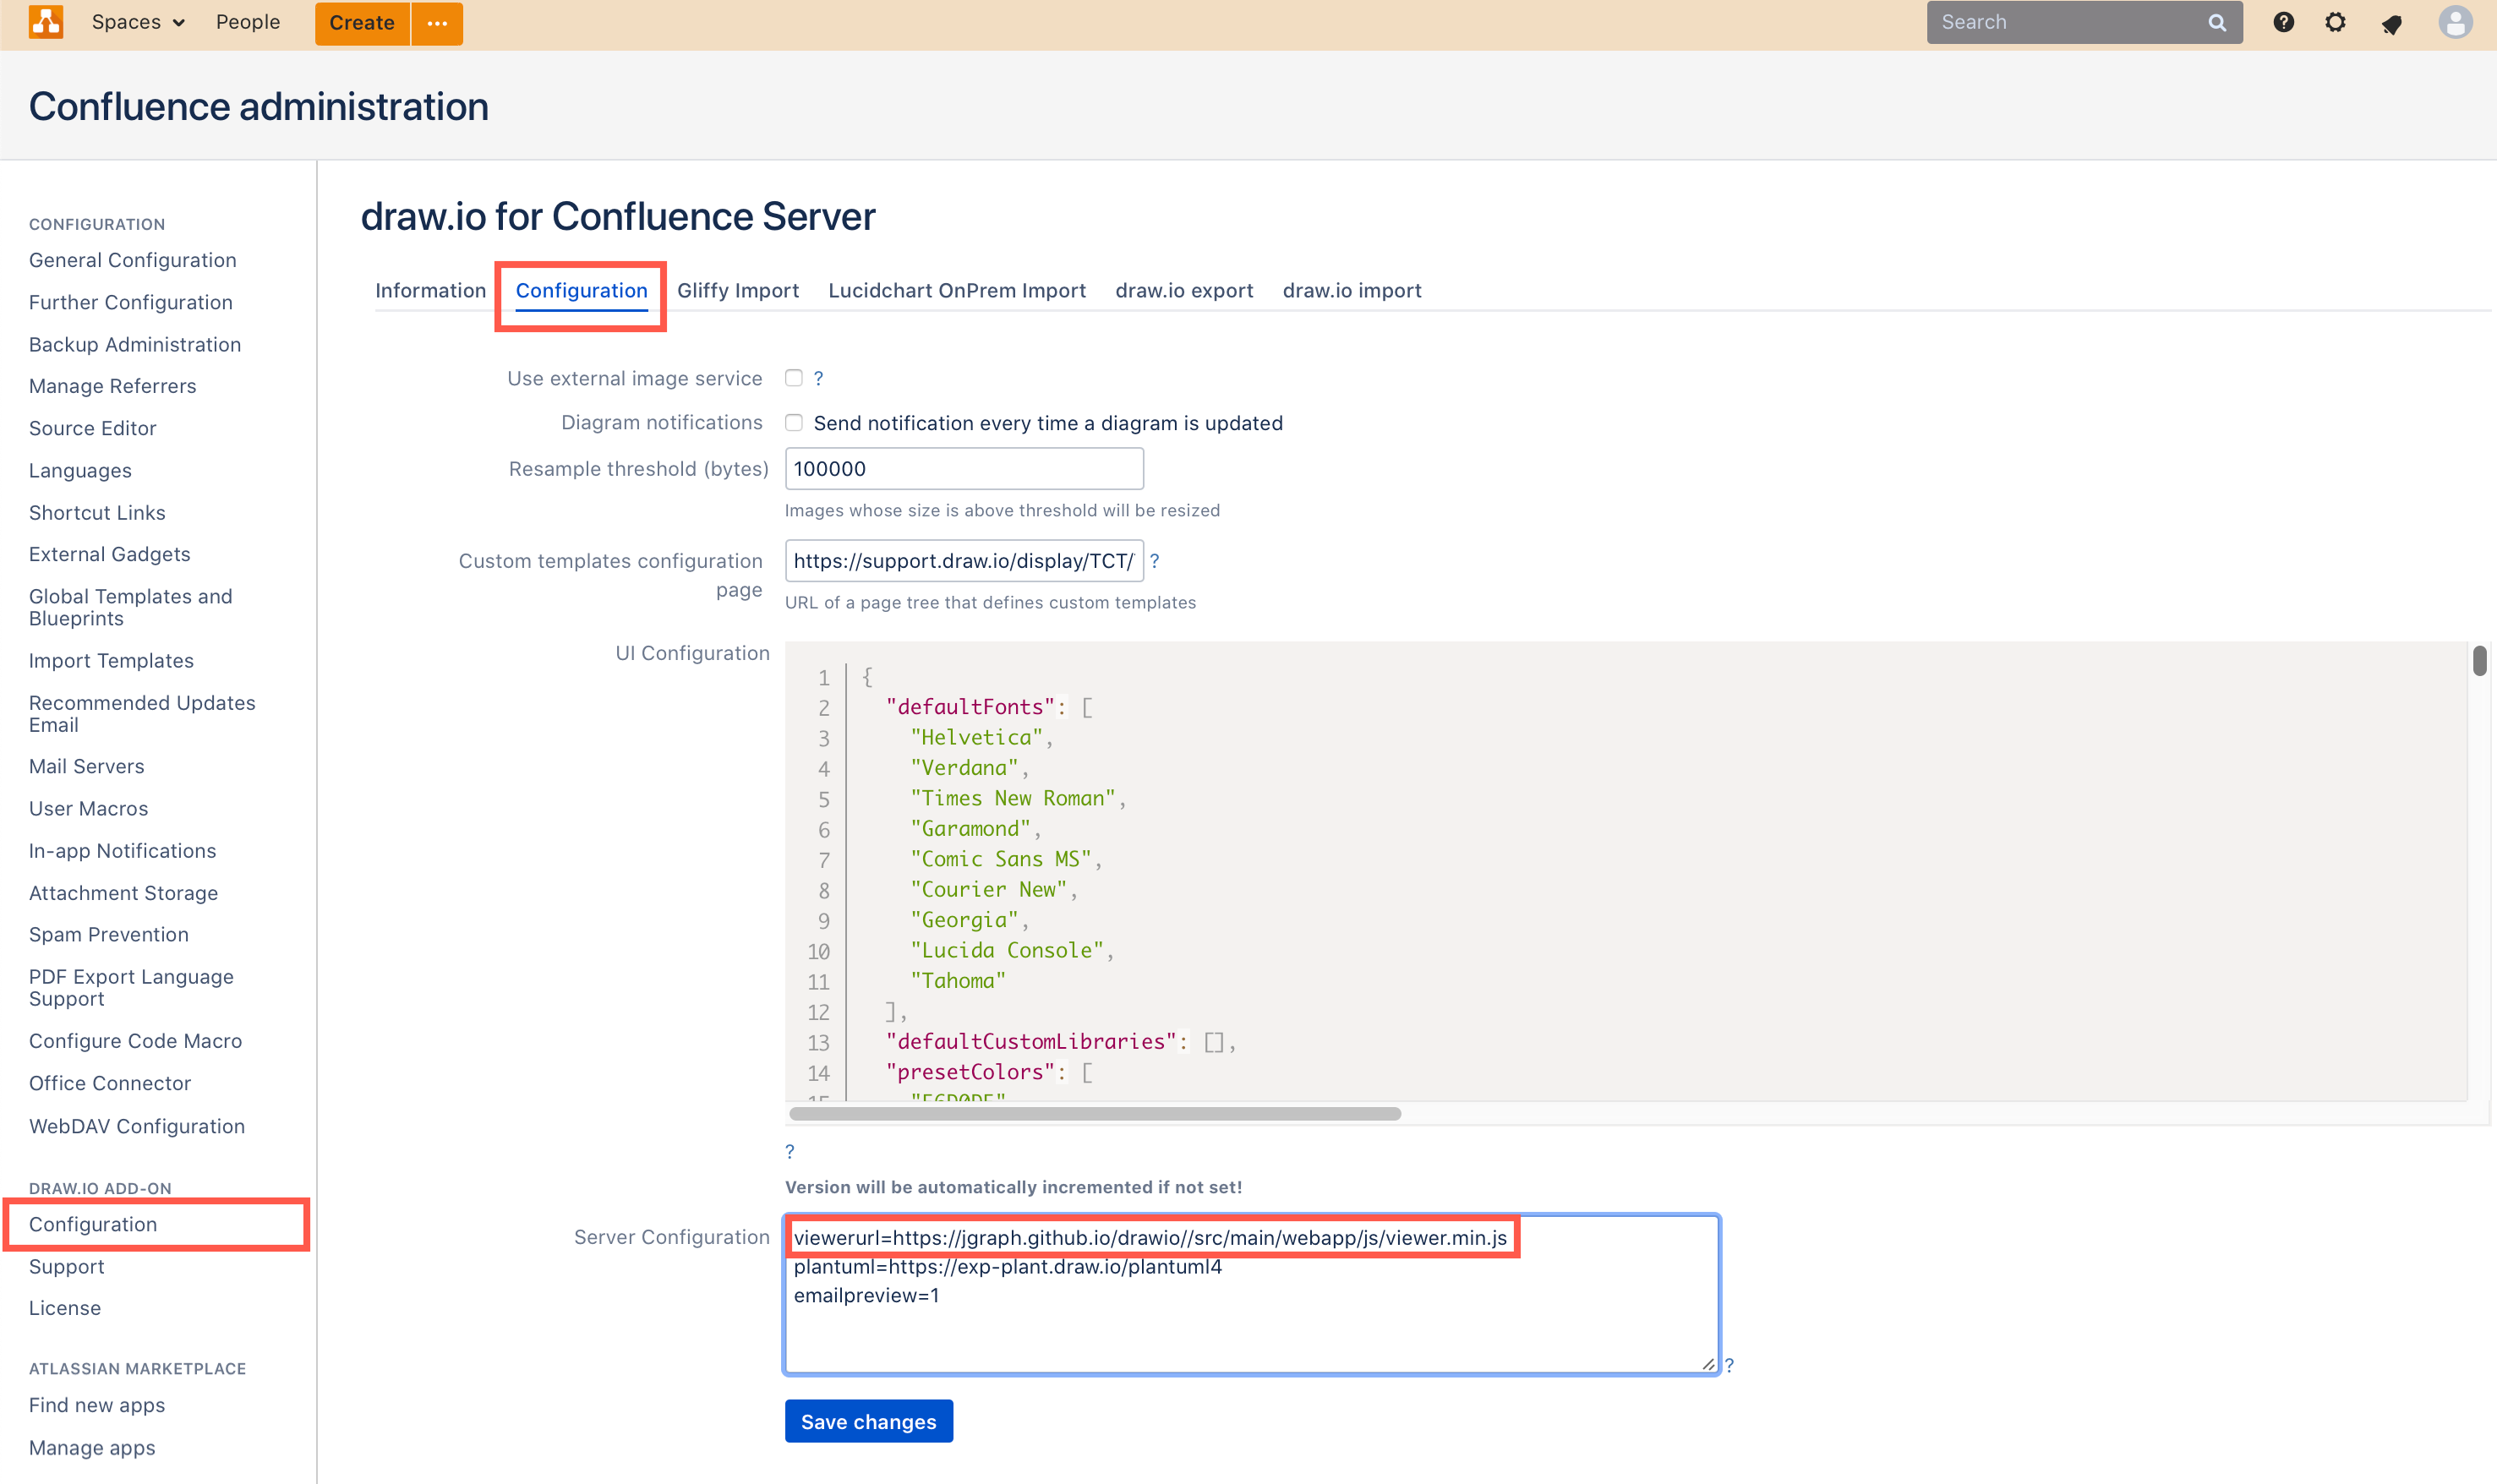 Add the URL to your self-hosted JavaScript viewer script to the draw.io Server Configuration field